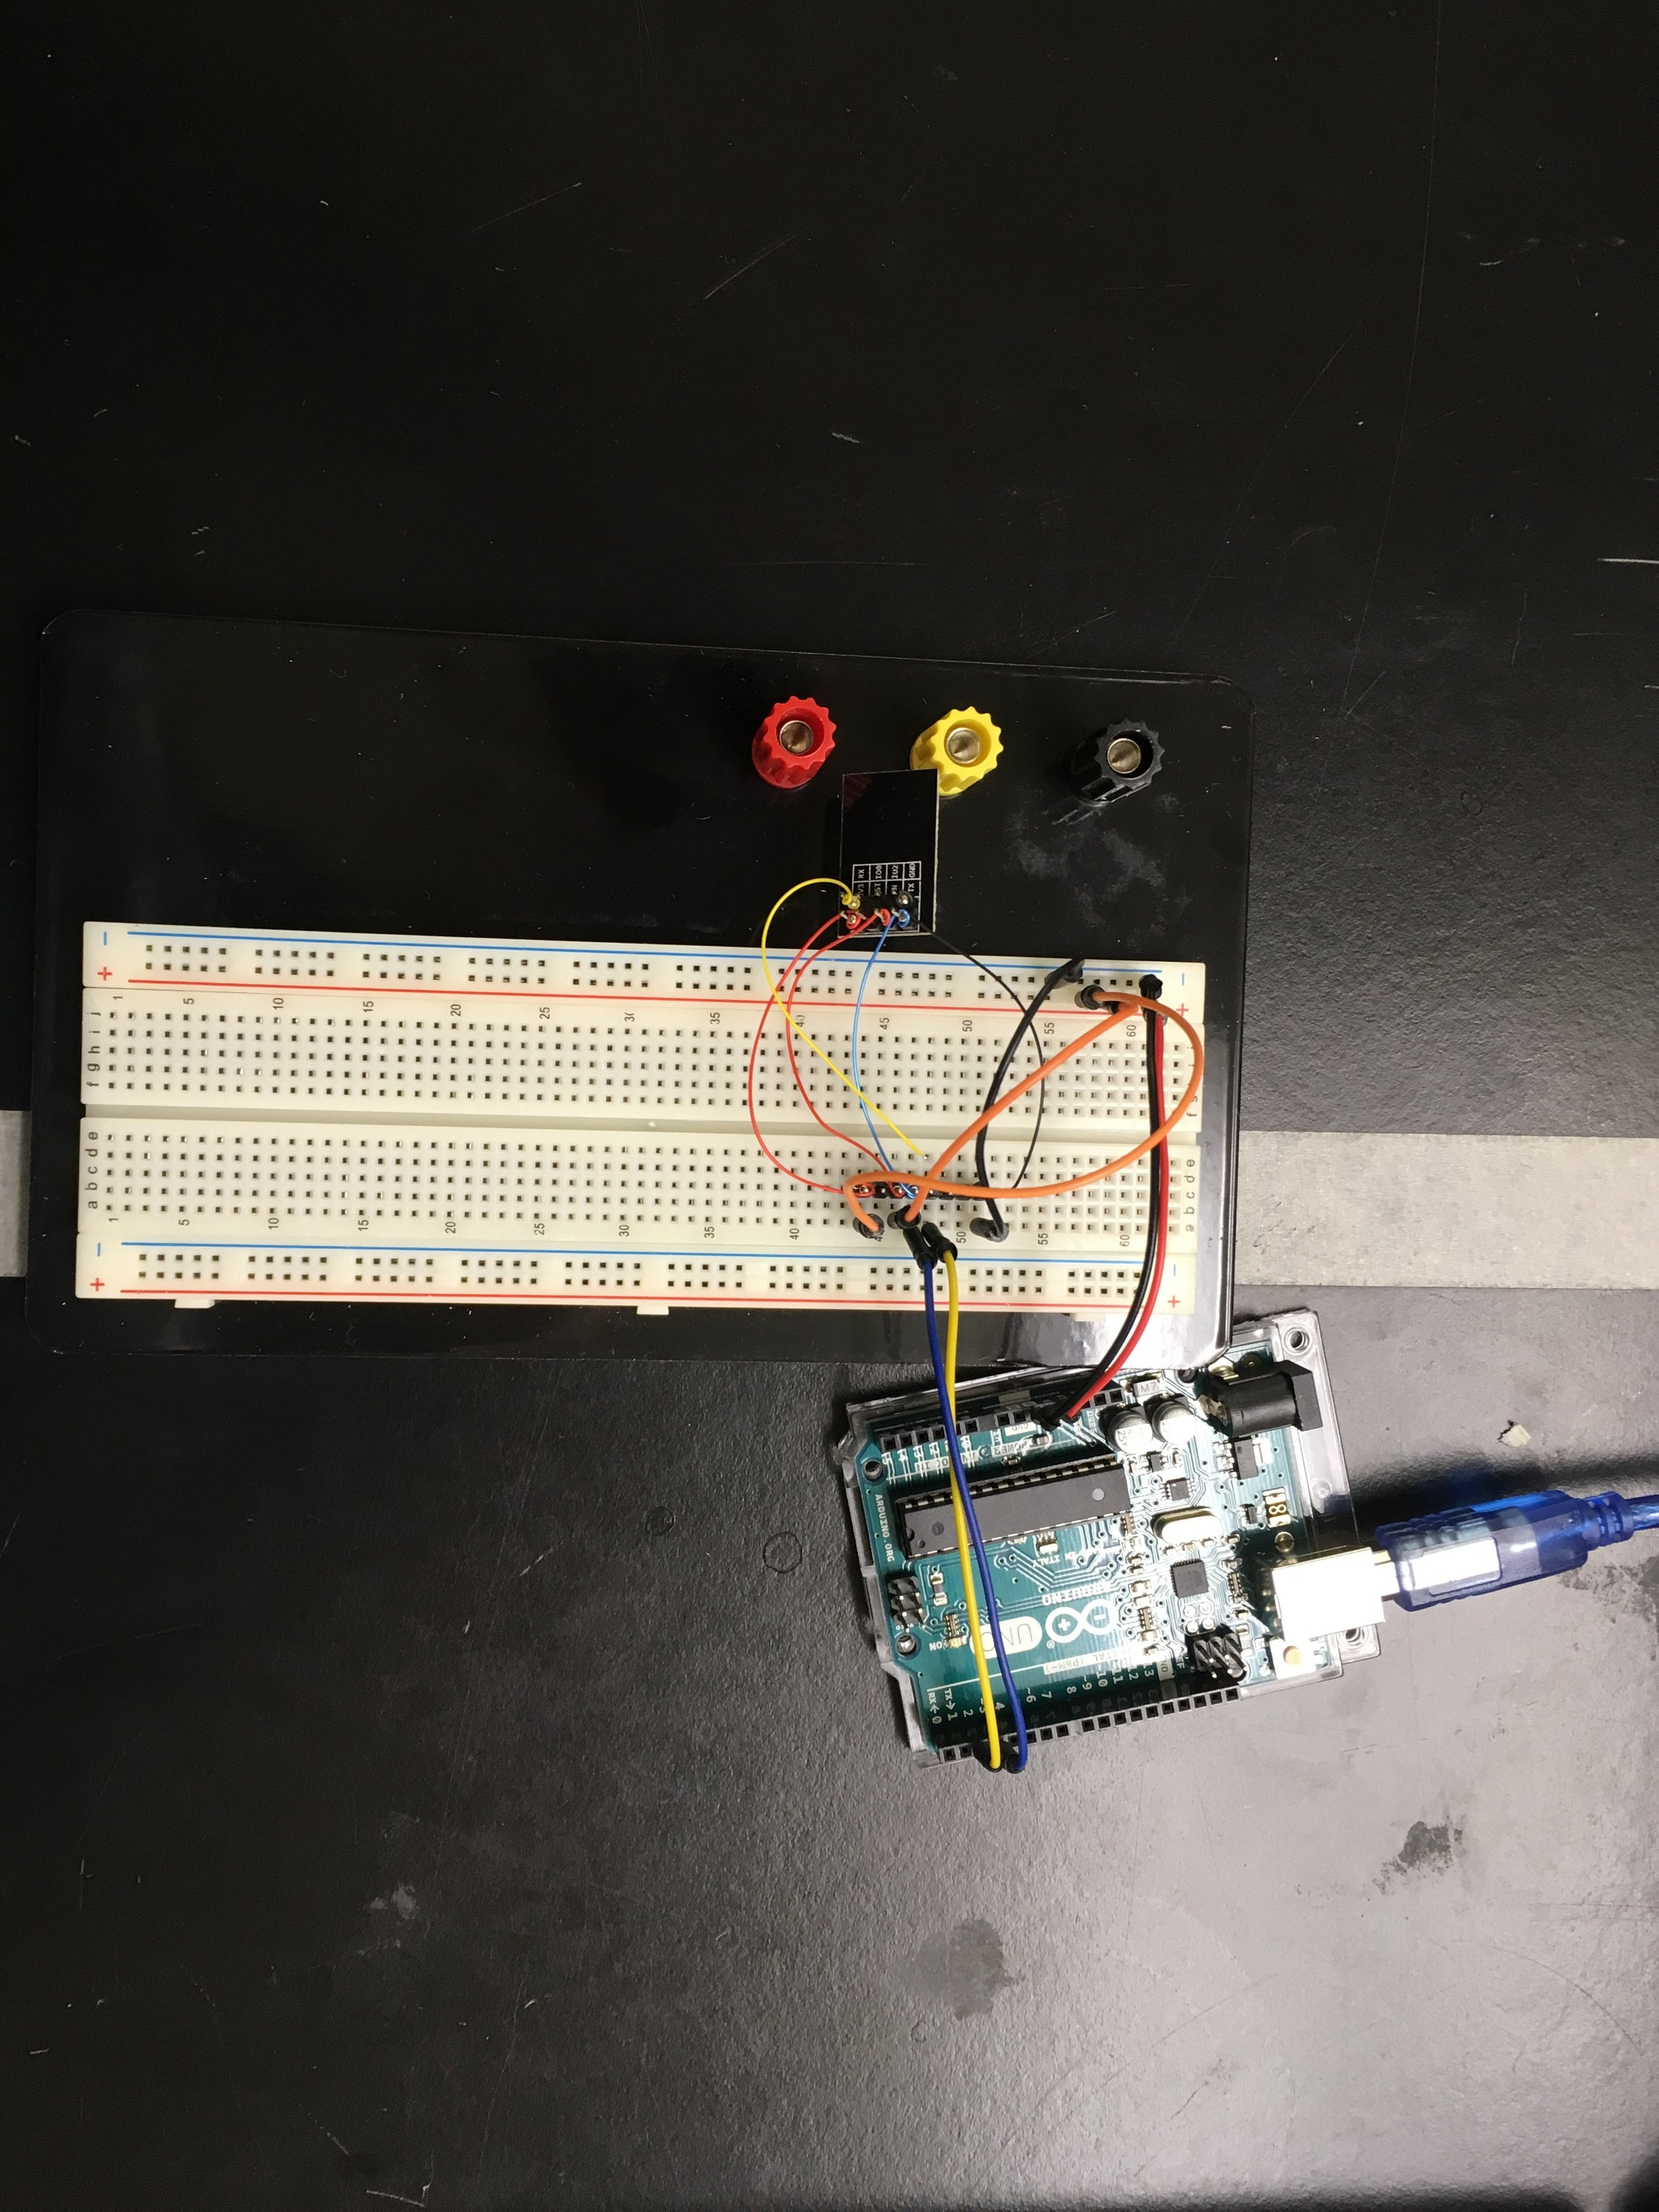 The ESP and Arduino wired up